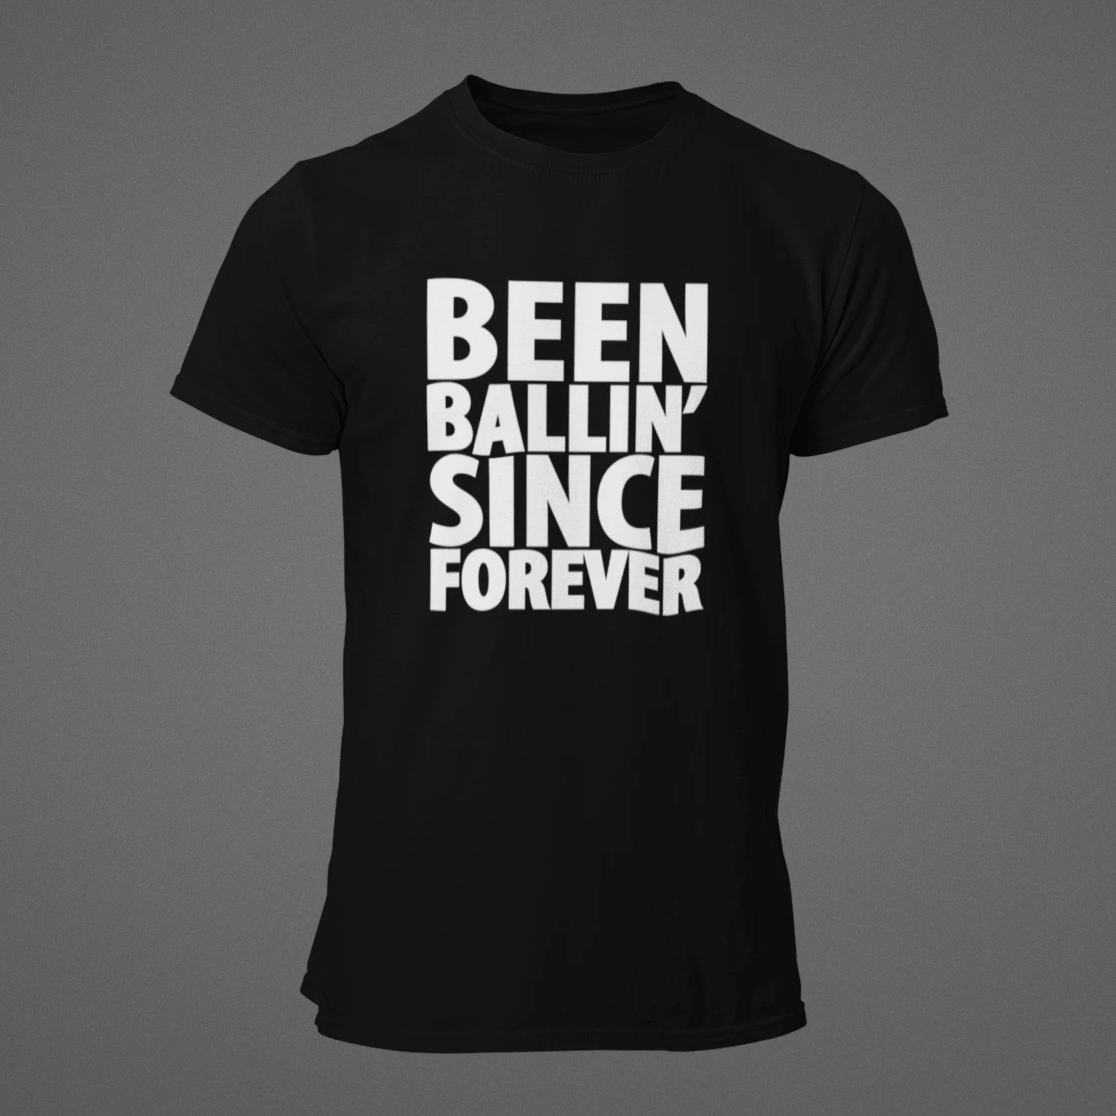 Been Ballin' Since Forever EXP1 T-Shirt